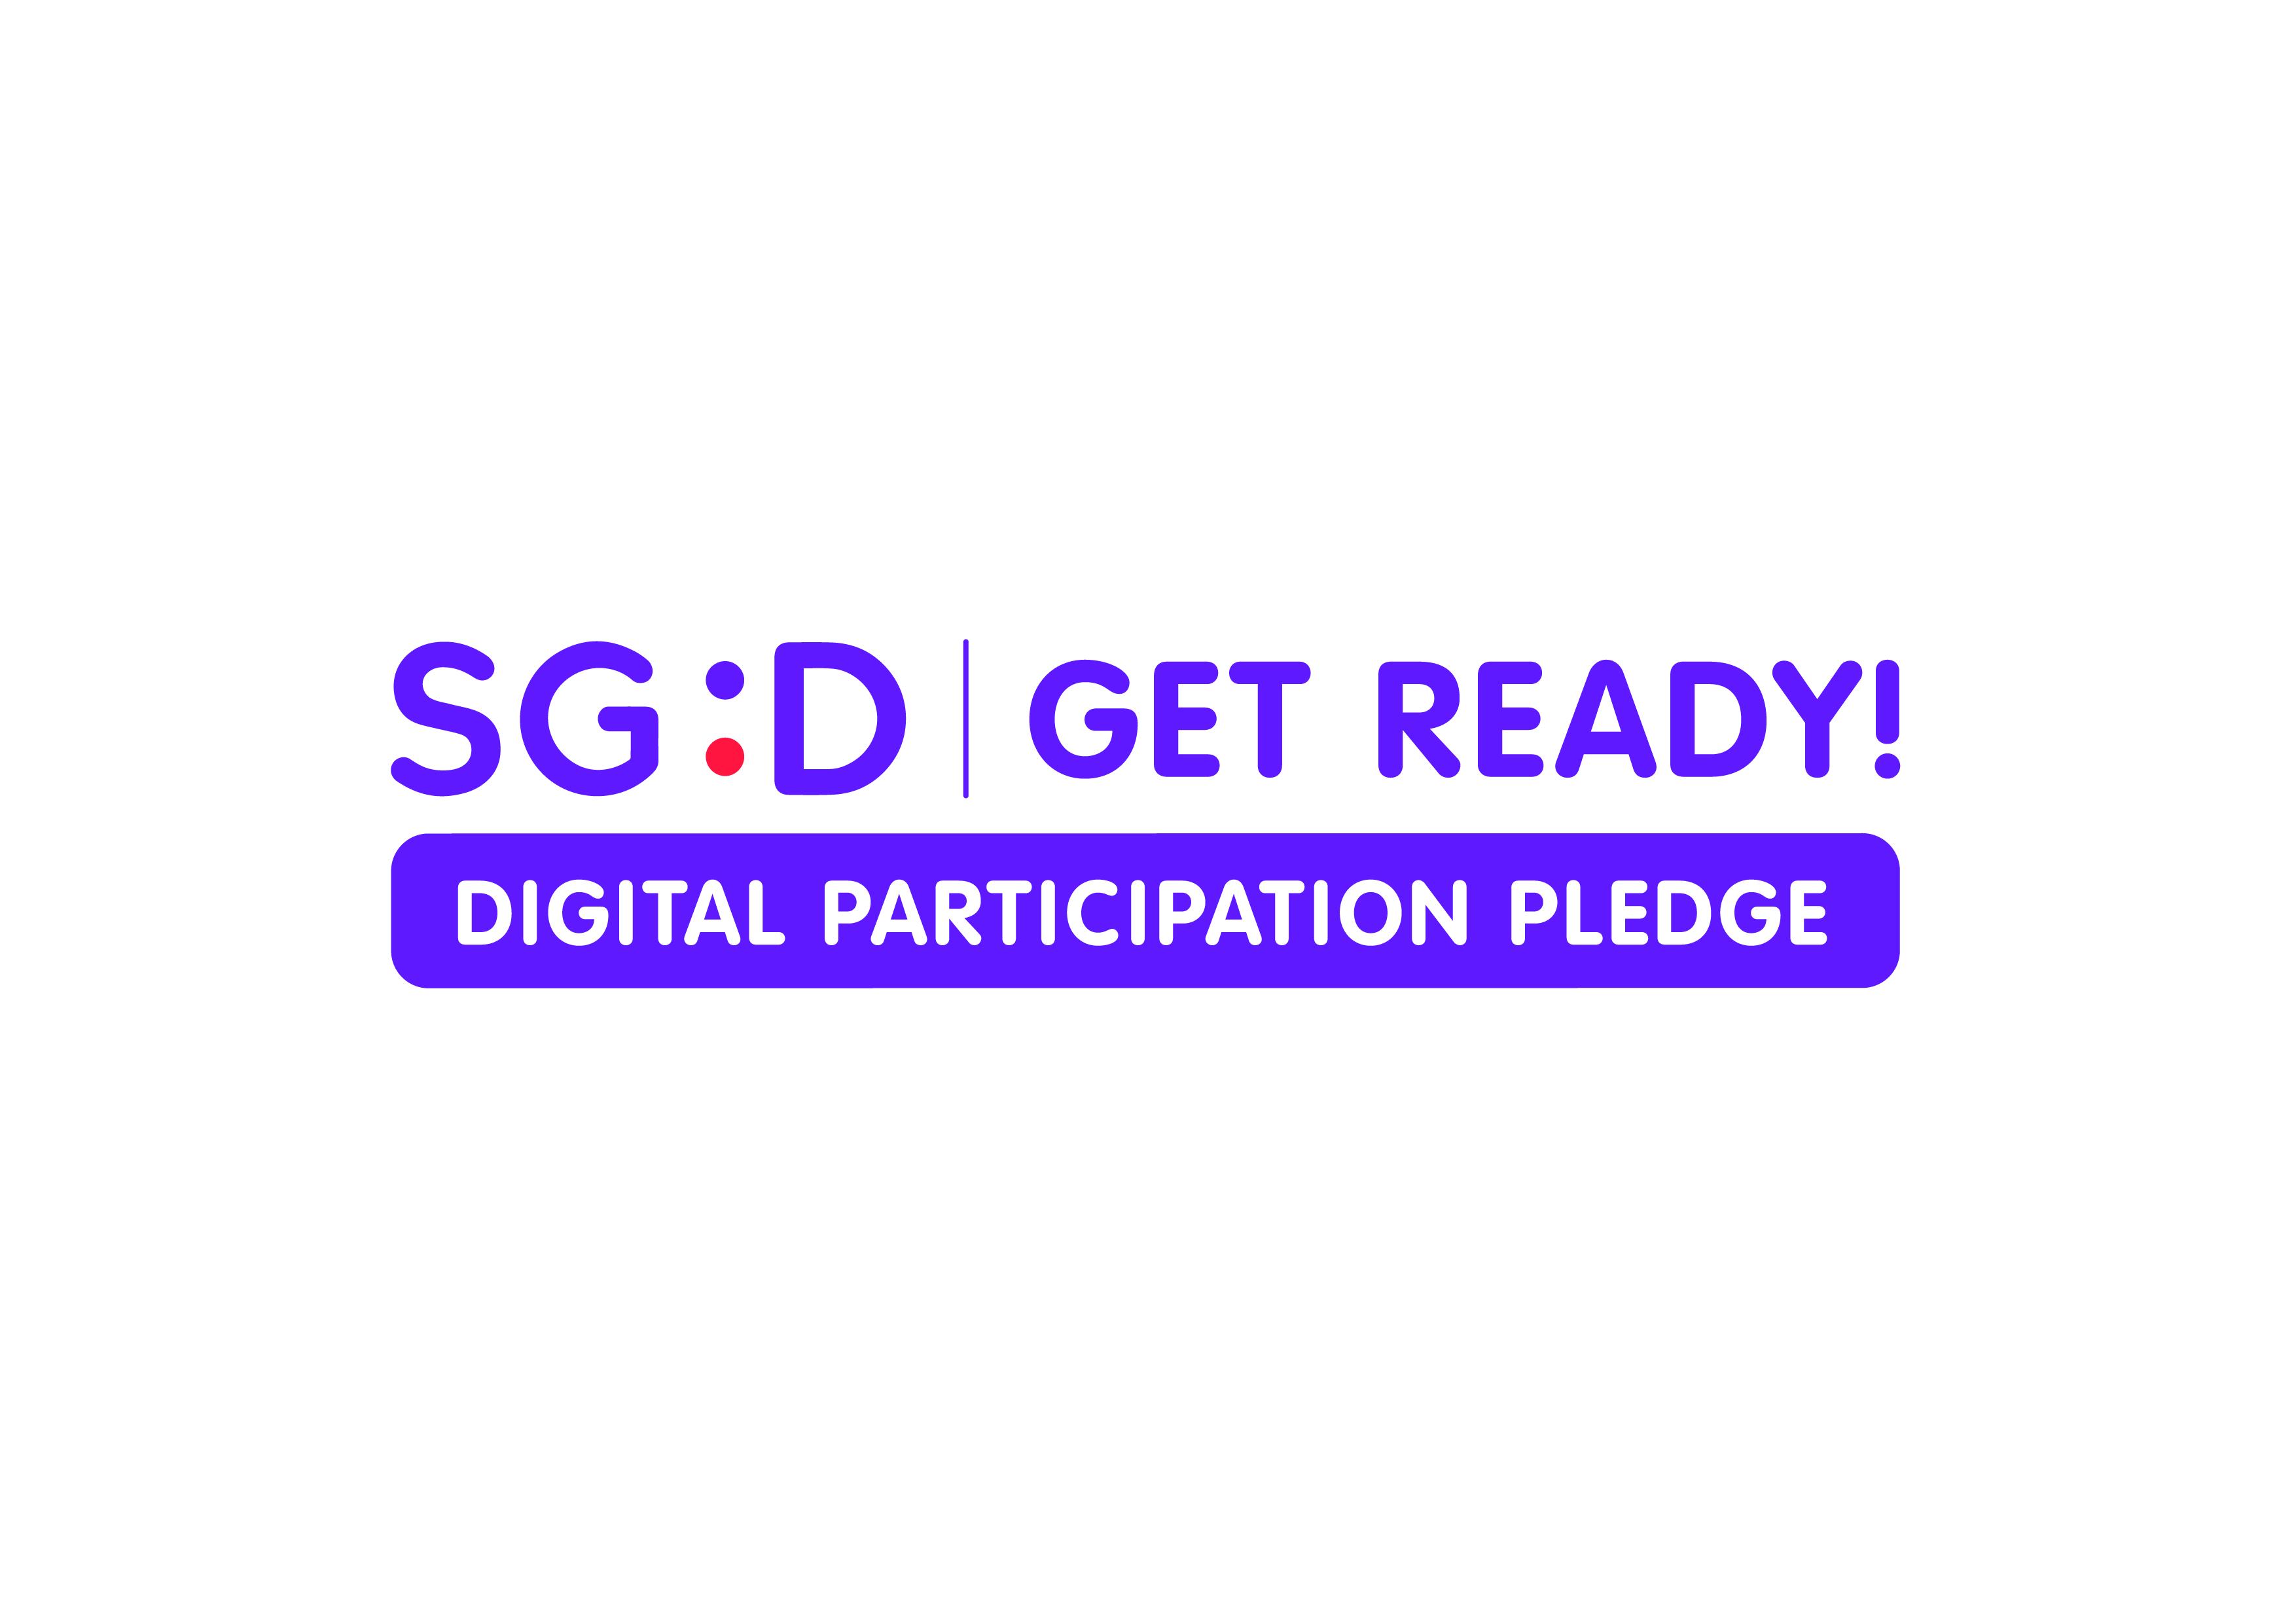 Learning Studio Educare is SGD Ready (Digital Participation Pledge).